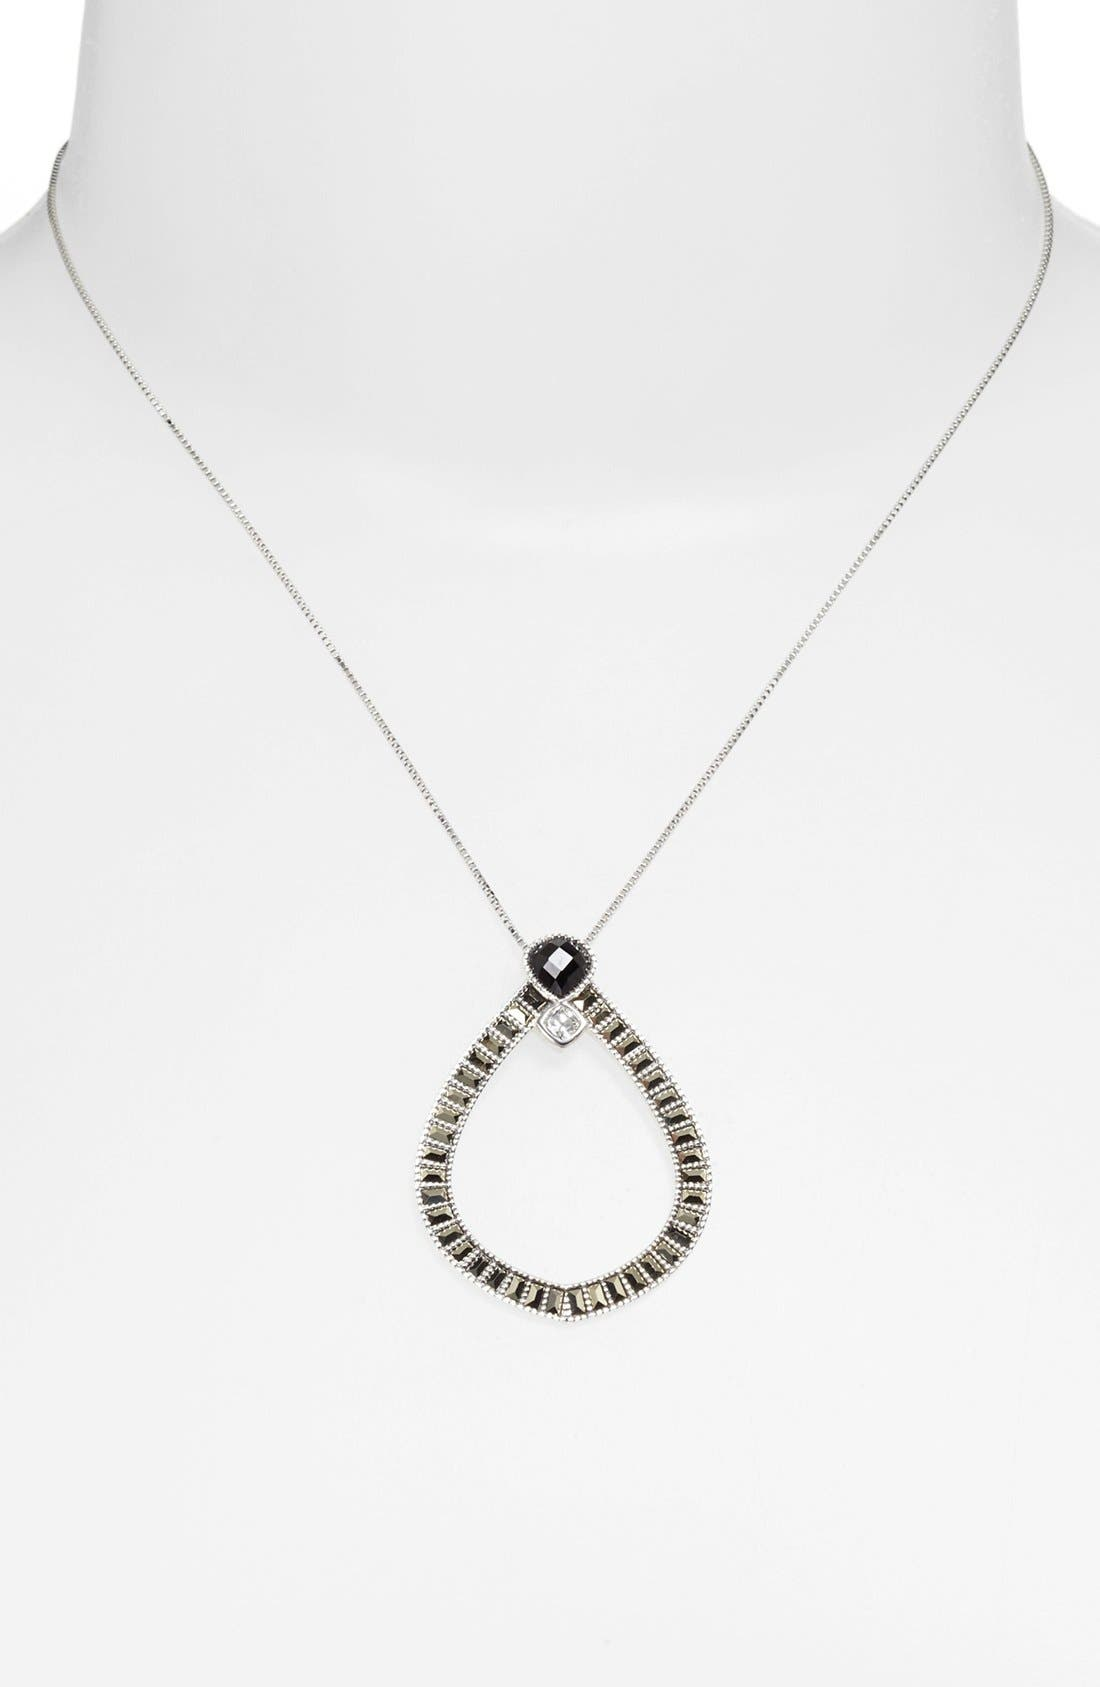 Main Image - Judith Jack Open Pendant Necklace